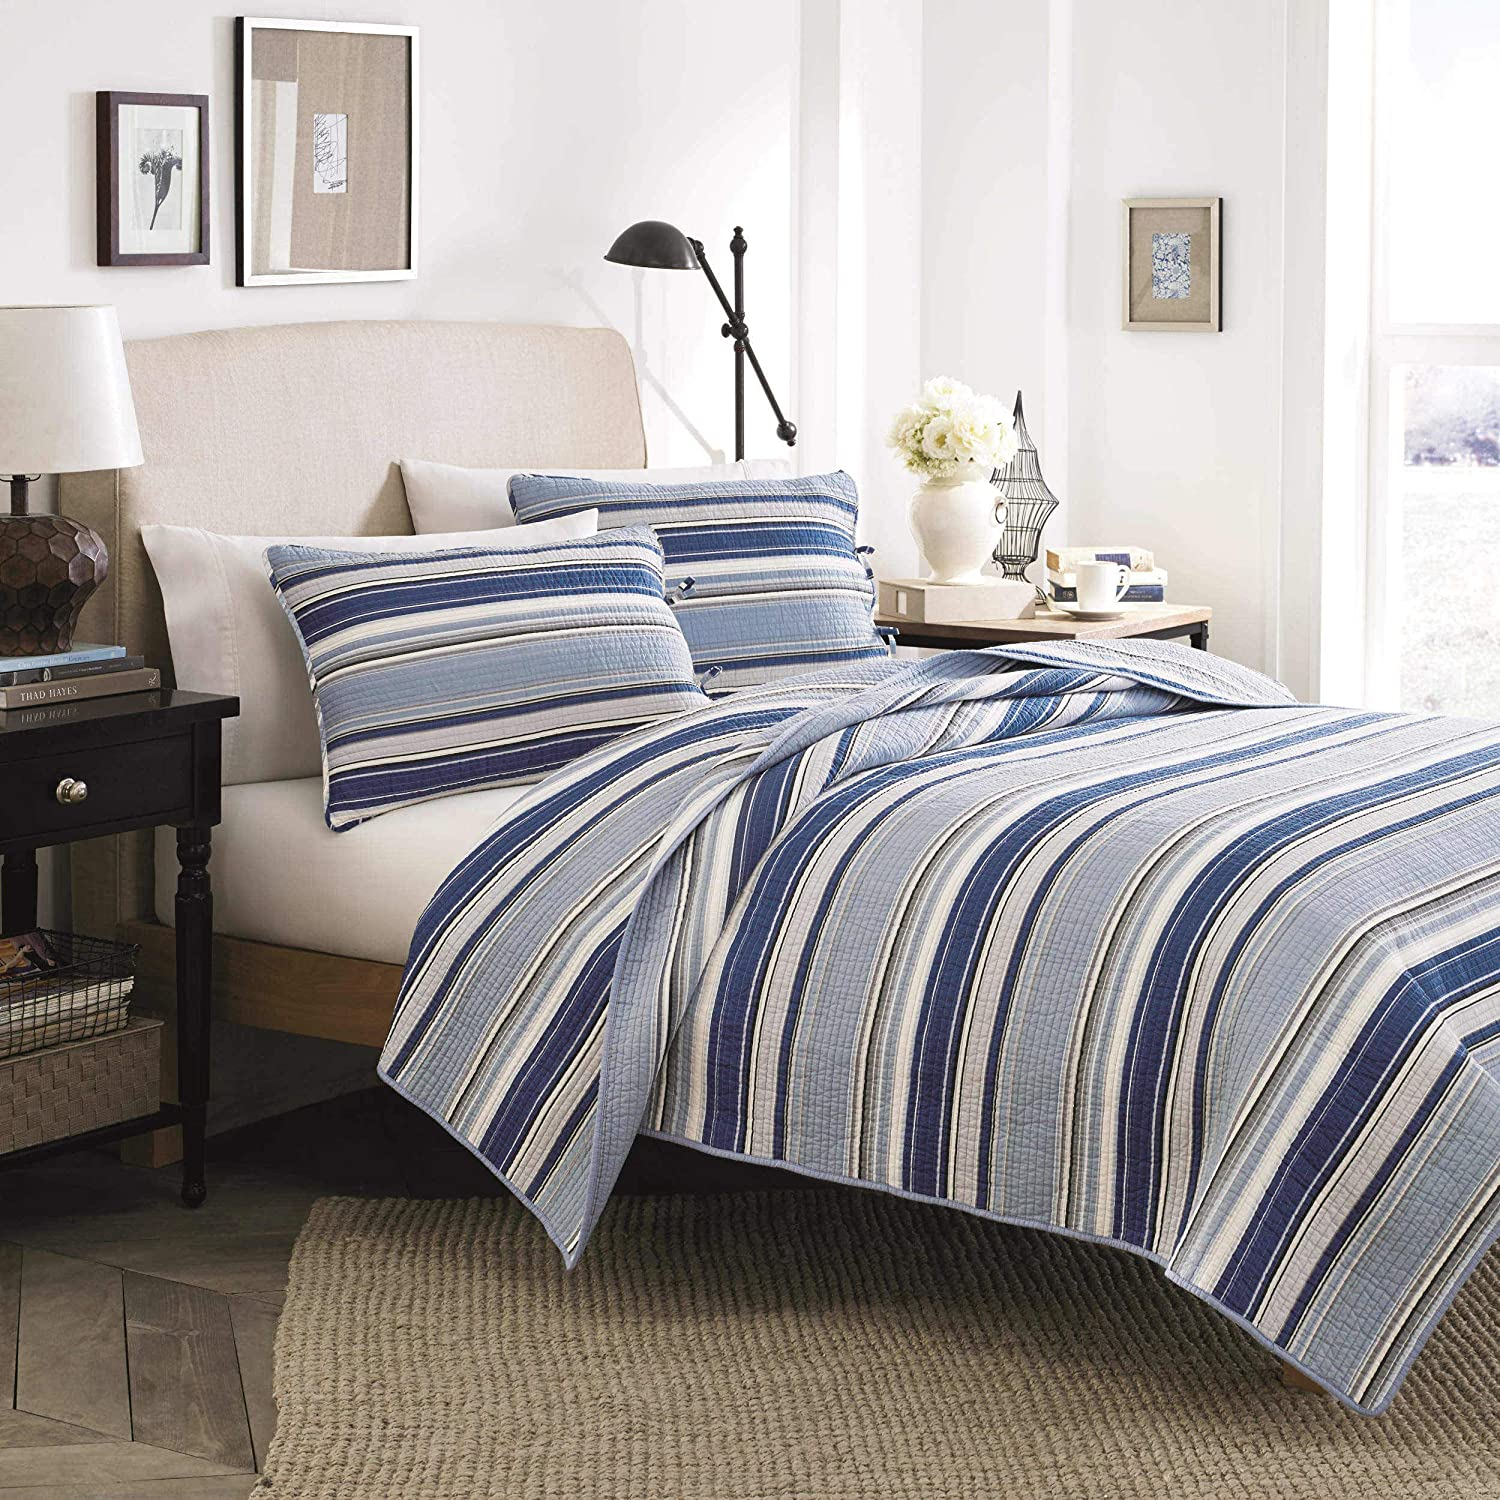 Stone Cottage Fresno Cotton Quilt Set, King, Blue